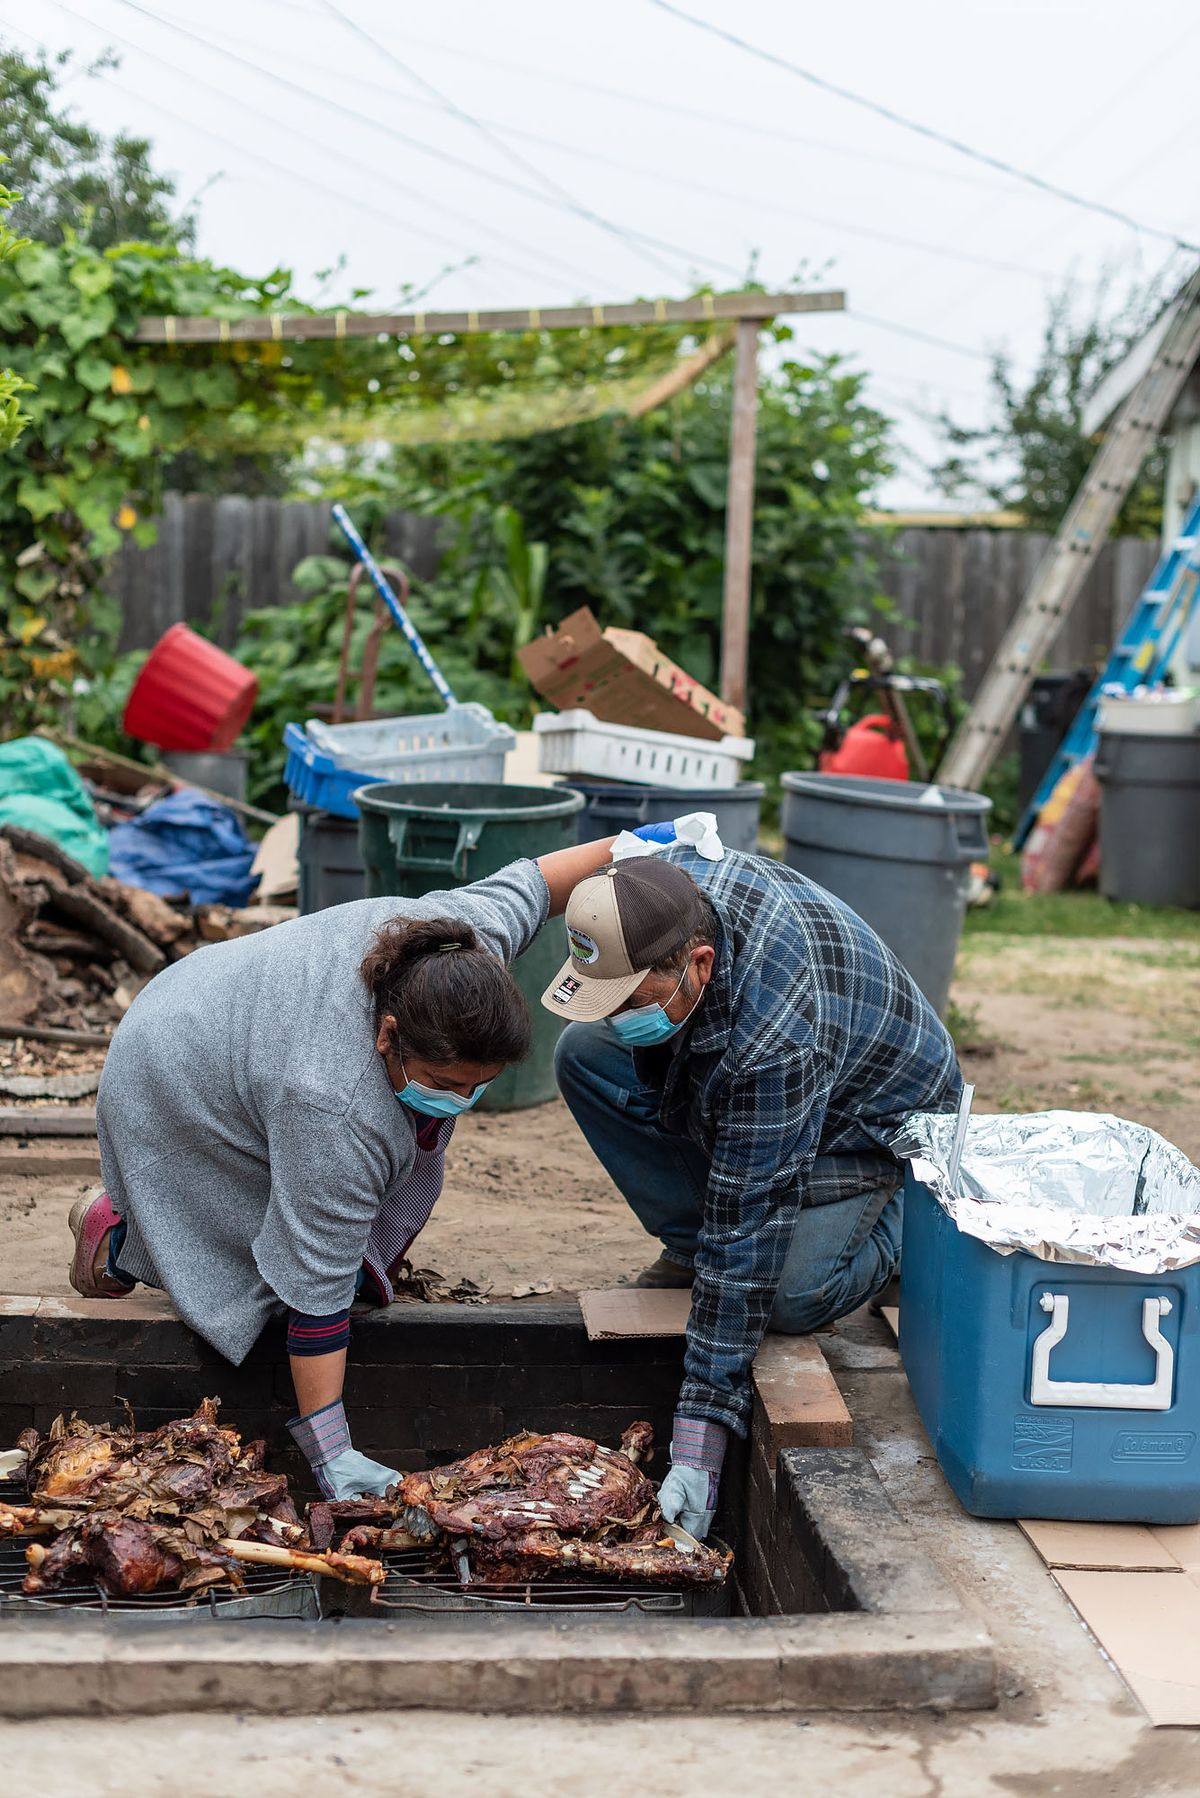 Candalaria and Francisco Bautista take their yique goat barbacoa out of a pit in their backyard.